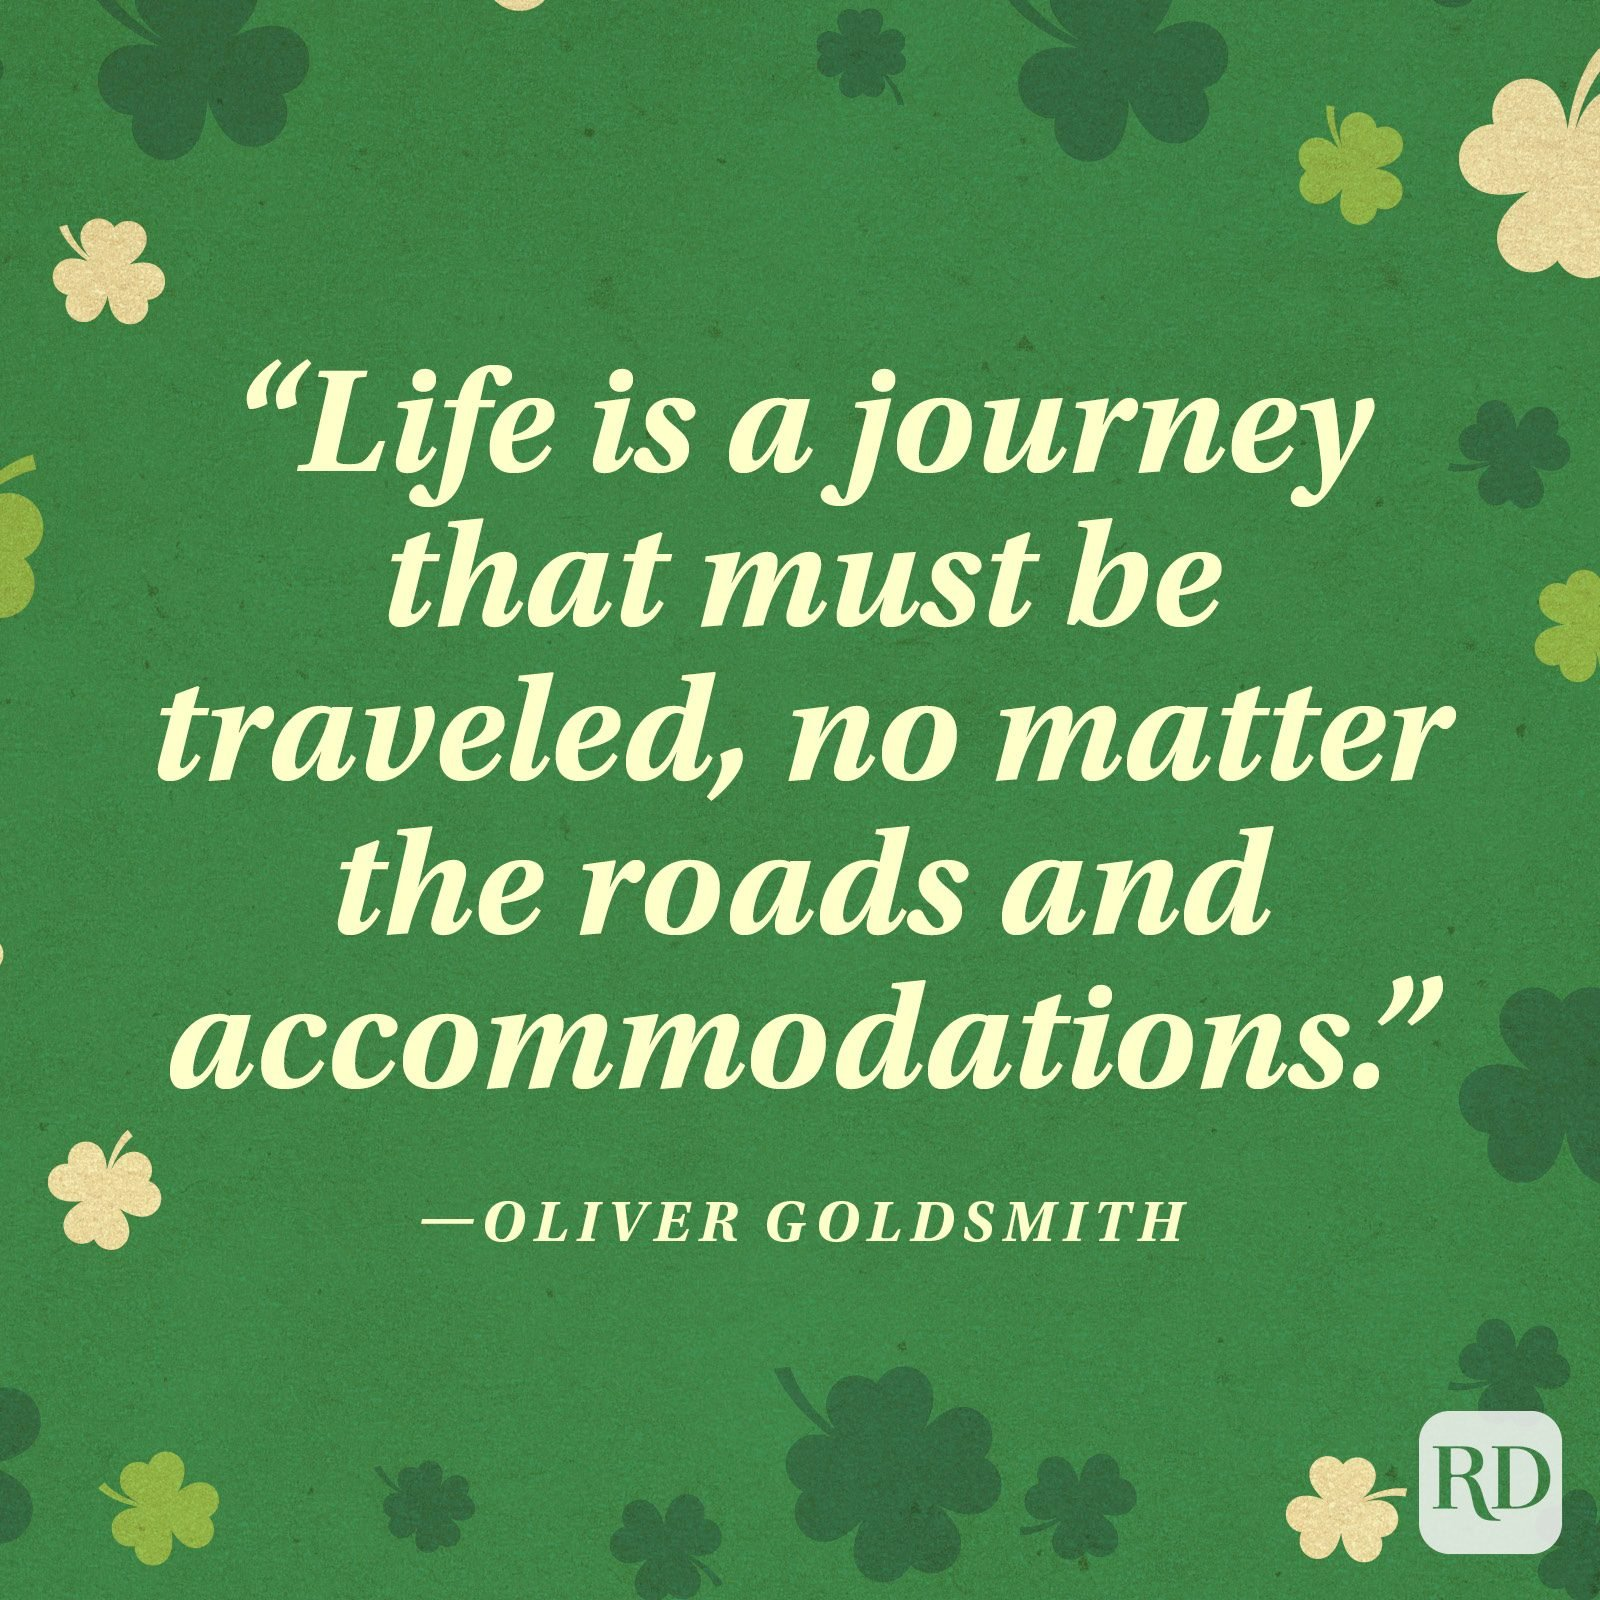 """Life is a journey that must be traveled, no matter the roads and accommodations."" —Oliver Goldsmith"